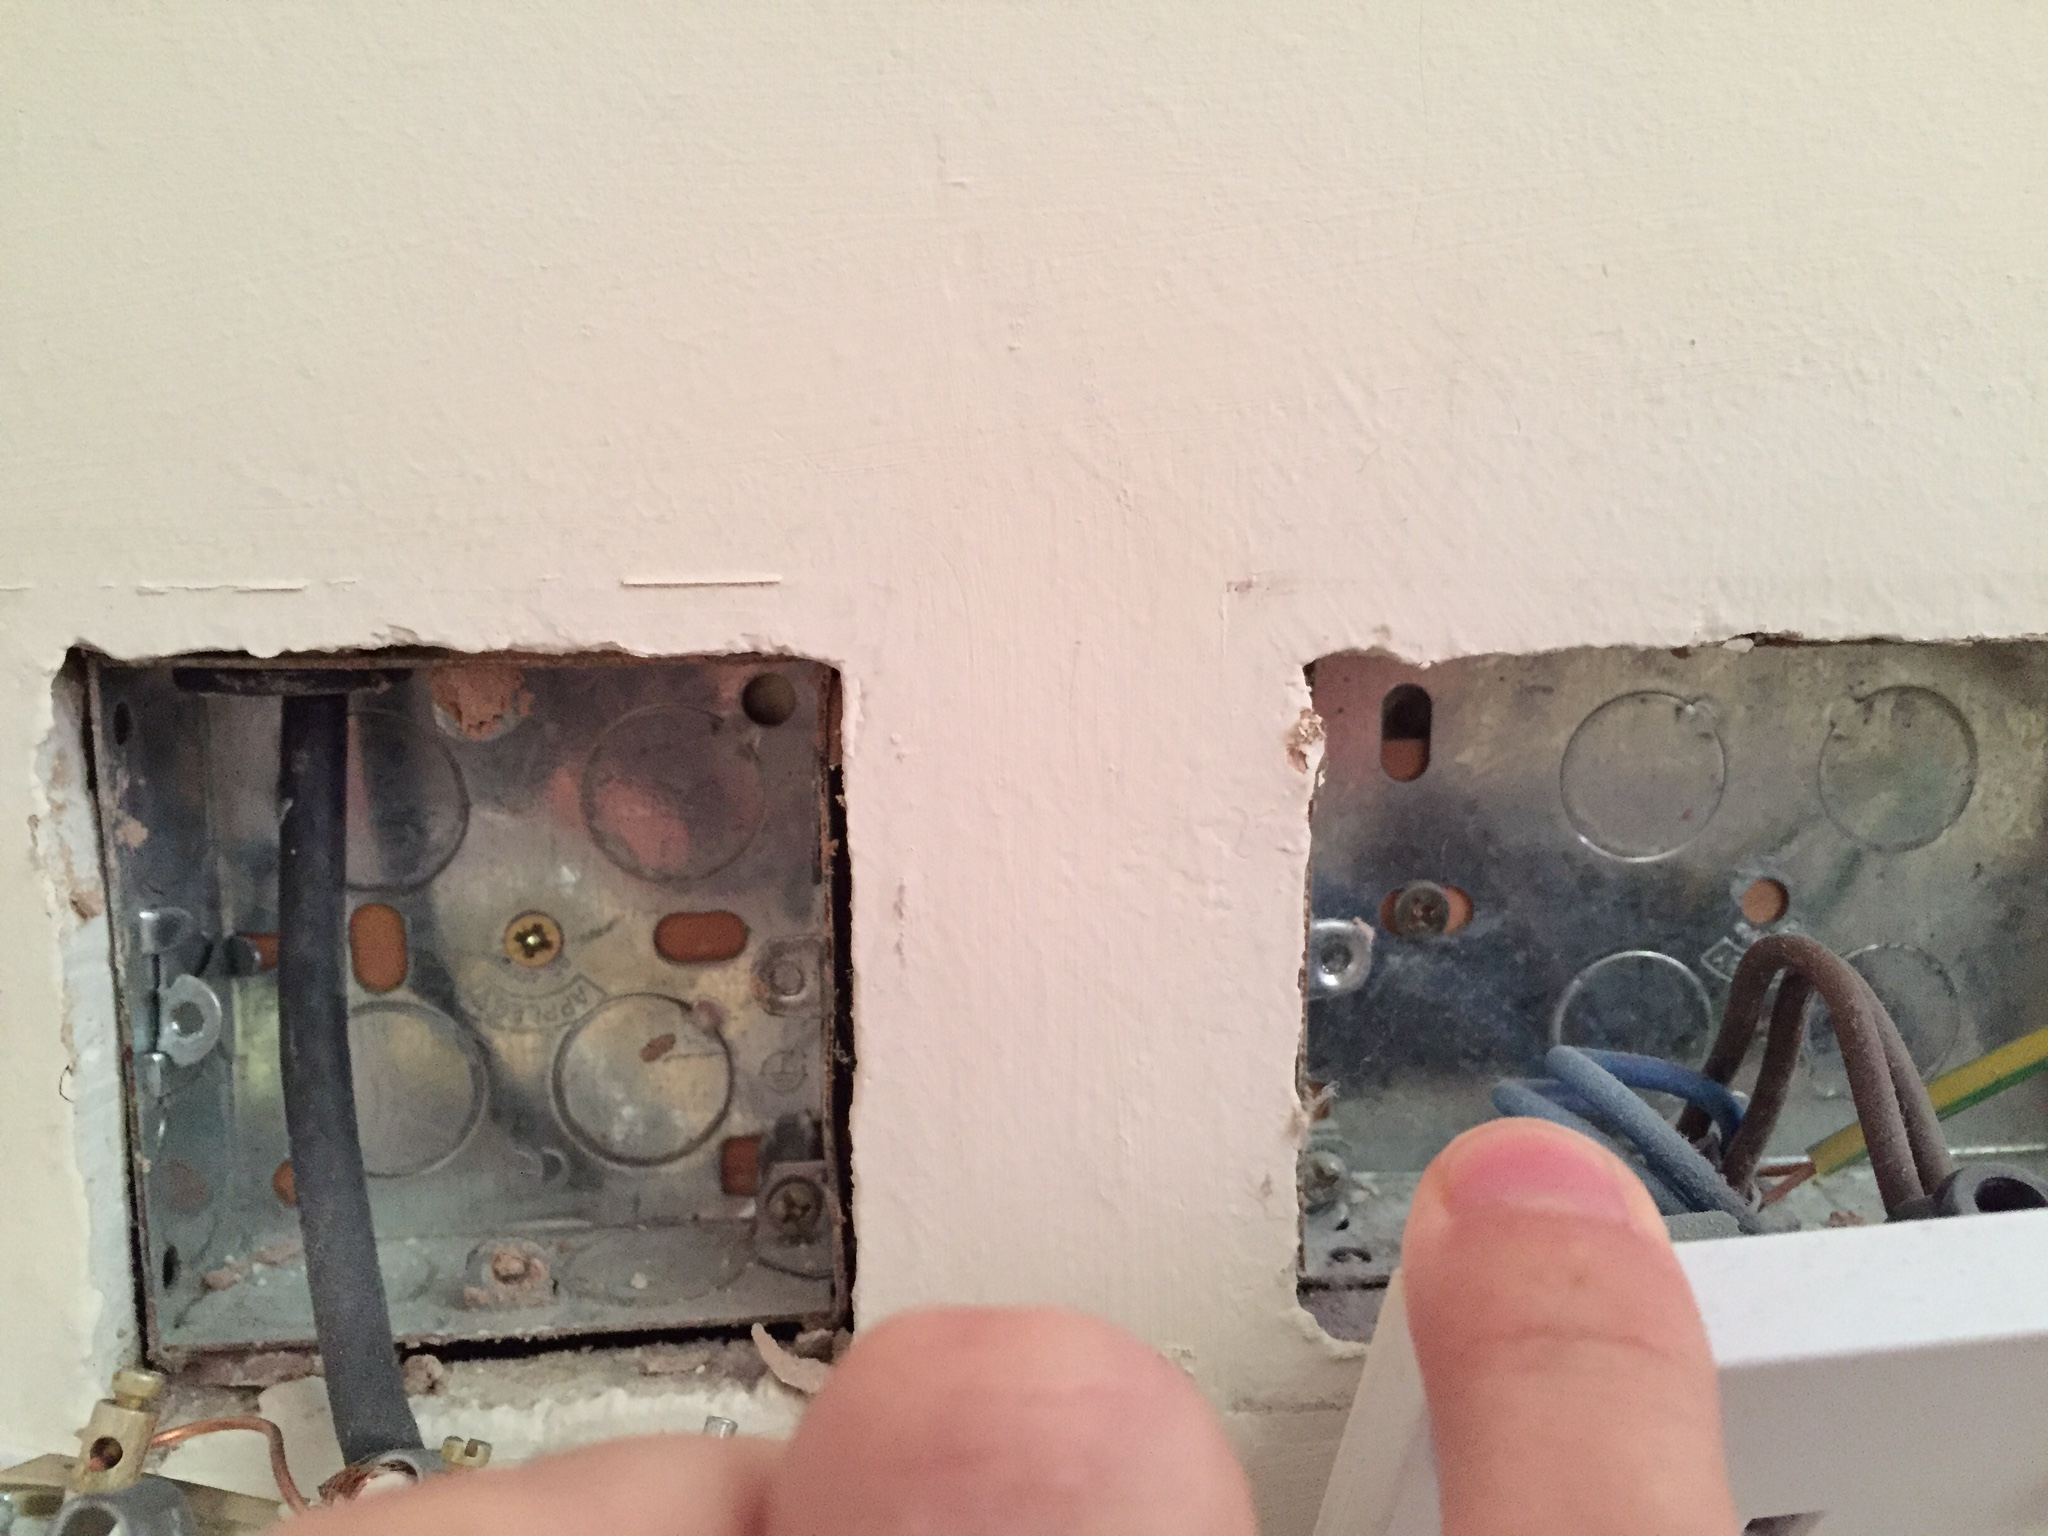 Mounting A Flat Screen Tv To A Plaster Board Wall